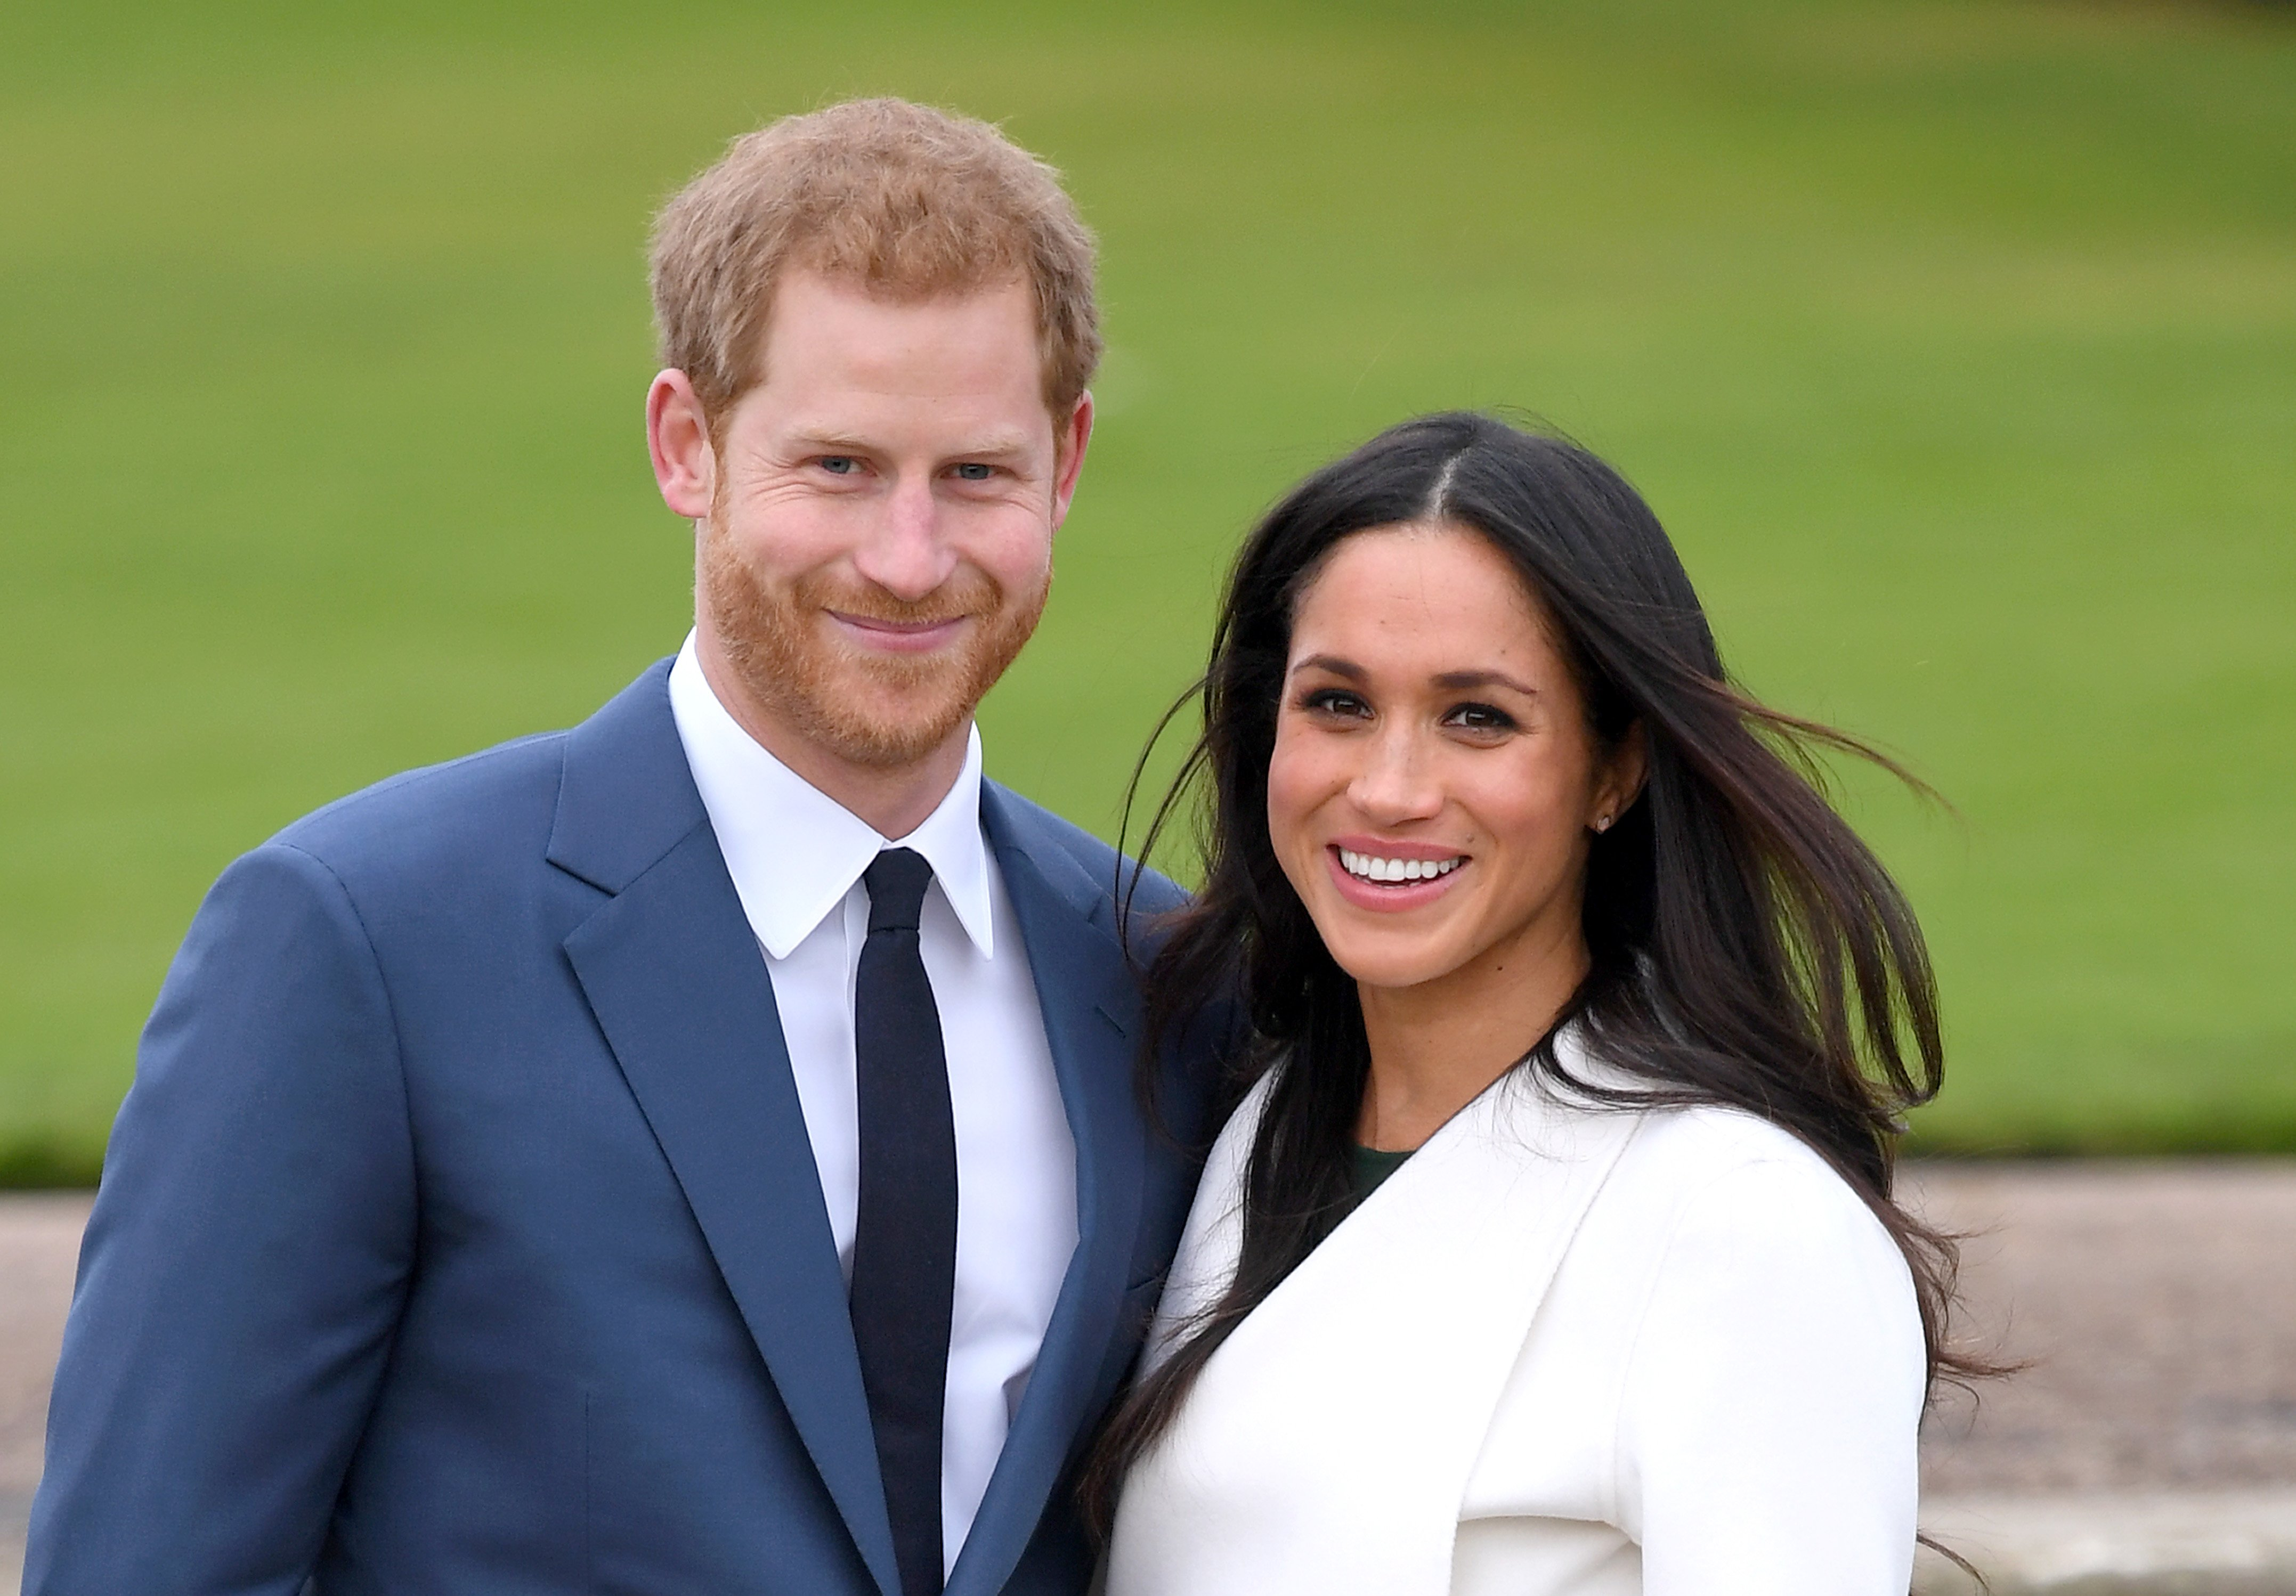 Prince Harry and Meghan Markle pictured official photoshoot to announce their engagement, 2017, London, England. | Photo: Getty Images